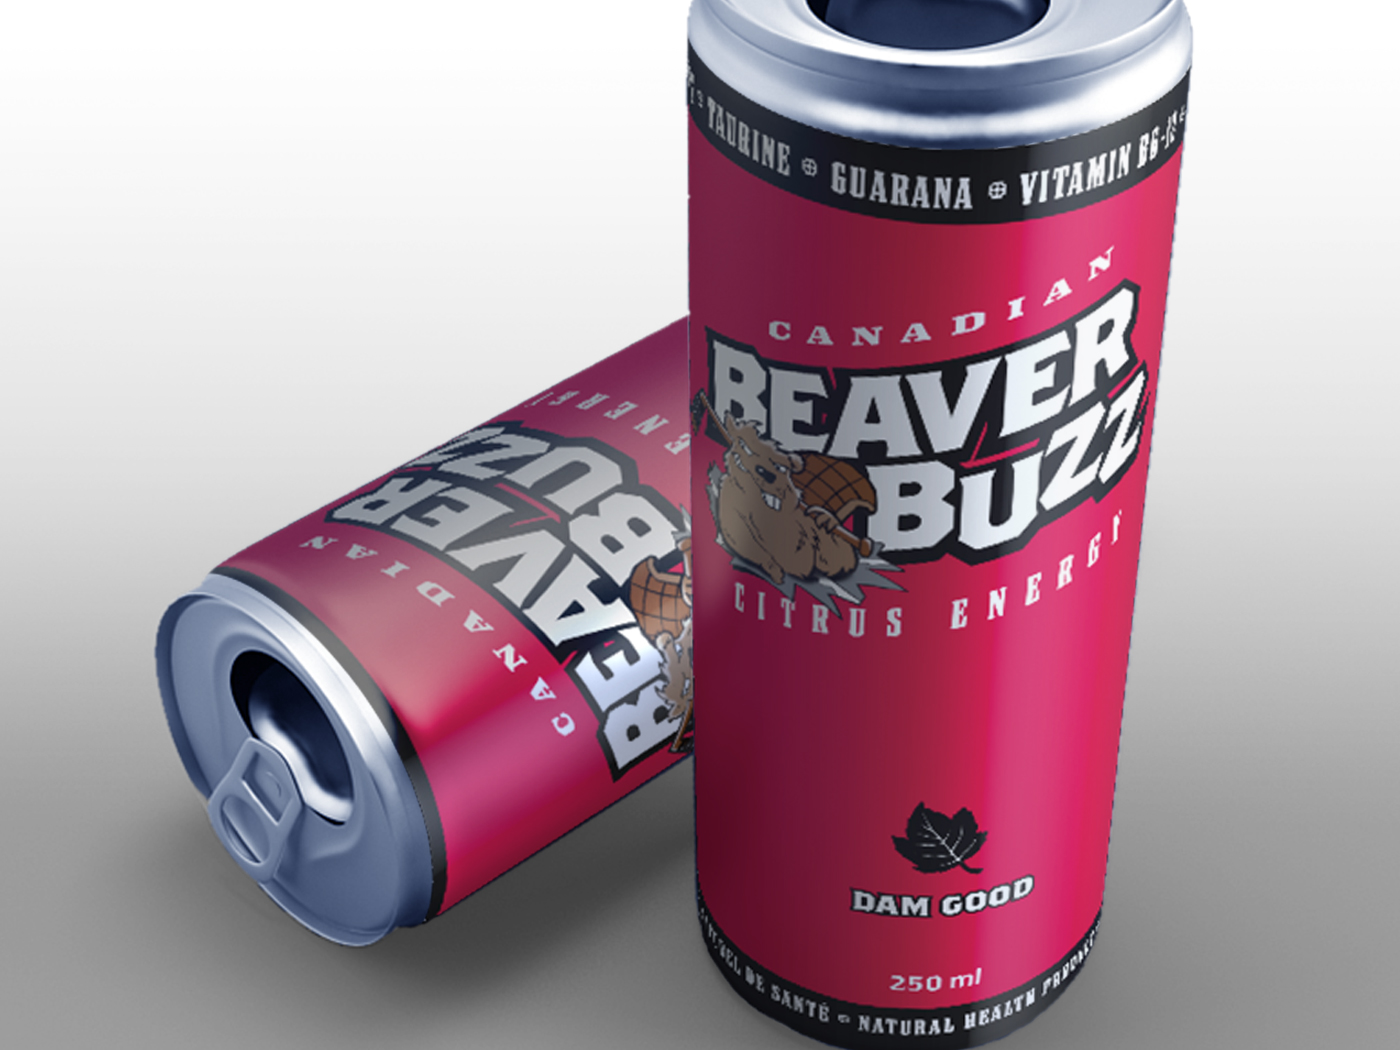 Beaver Buzz Energy Drink. Branding and Packaging.